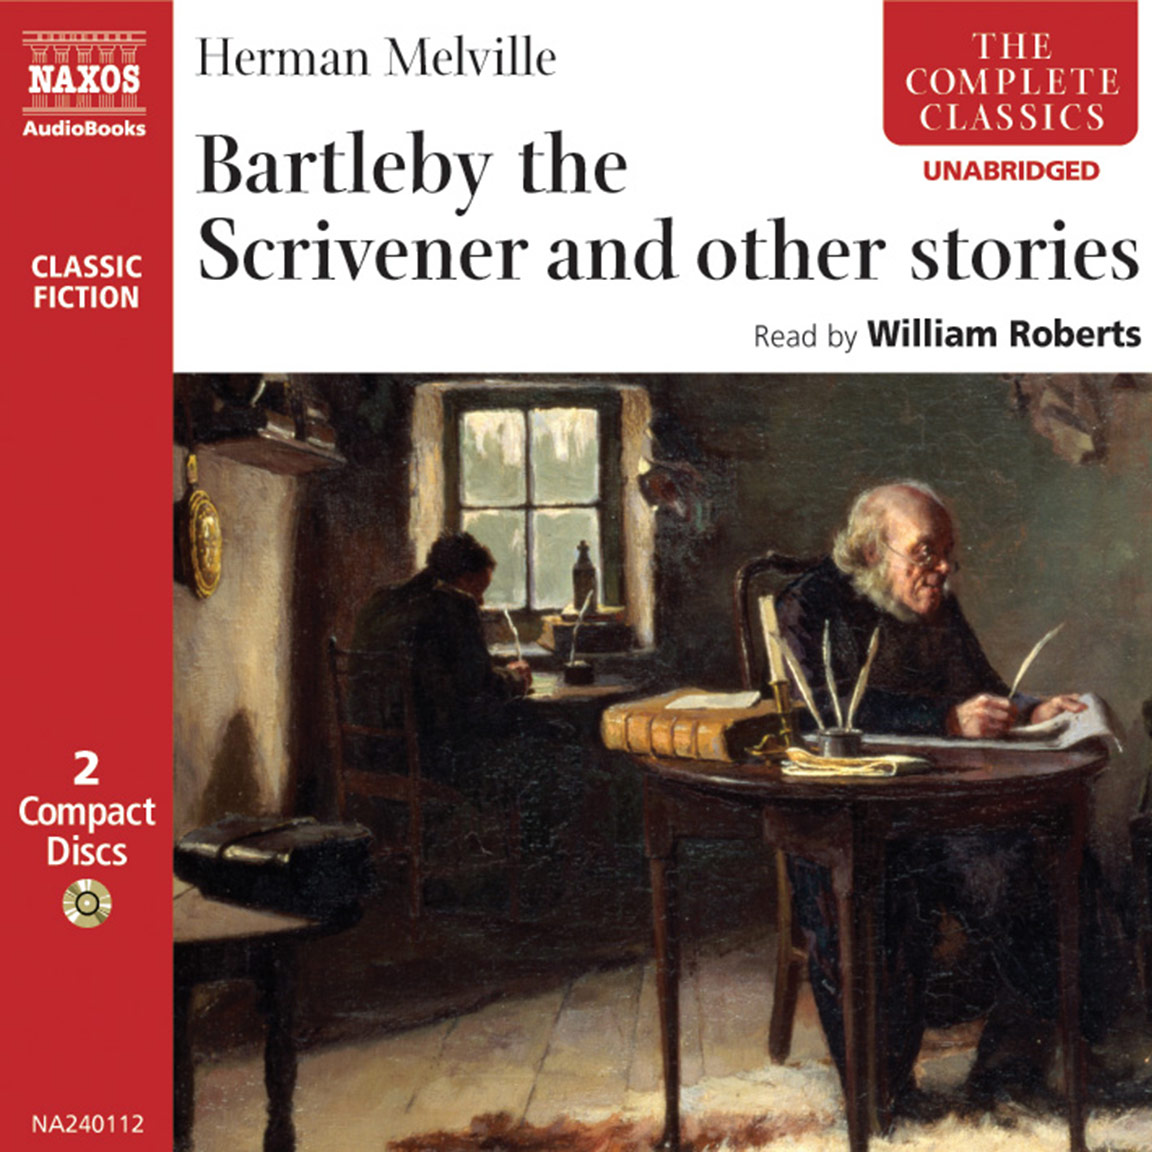 Bartleby, the Scrivener by Herman Melville (Short Story Analysis)